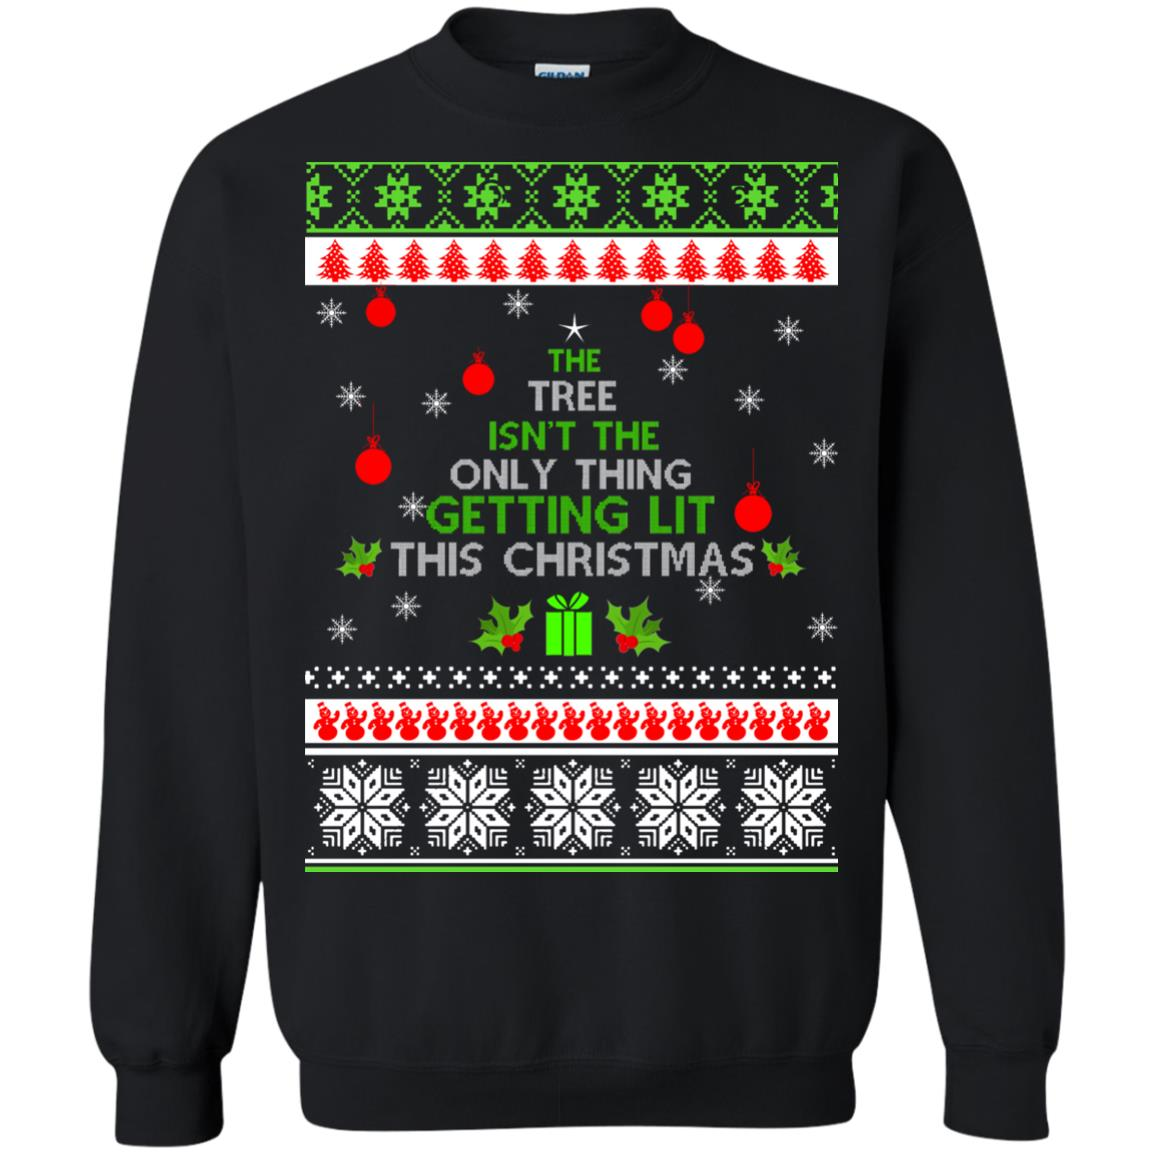 image 5569 - The Tree Isn't The Only Thing Getting Lit This Christmas Sweater, Long Sleeve